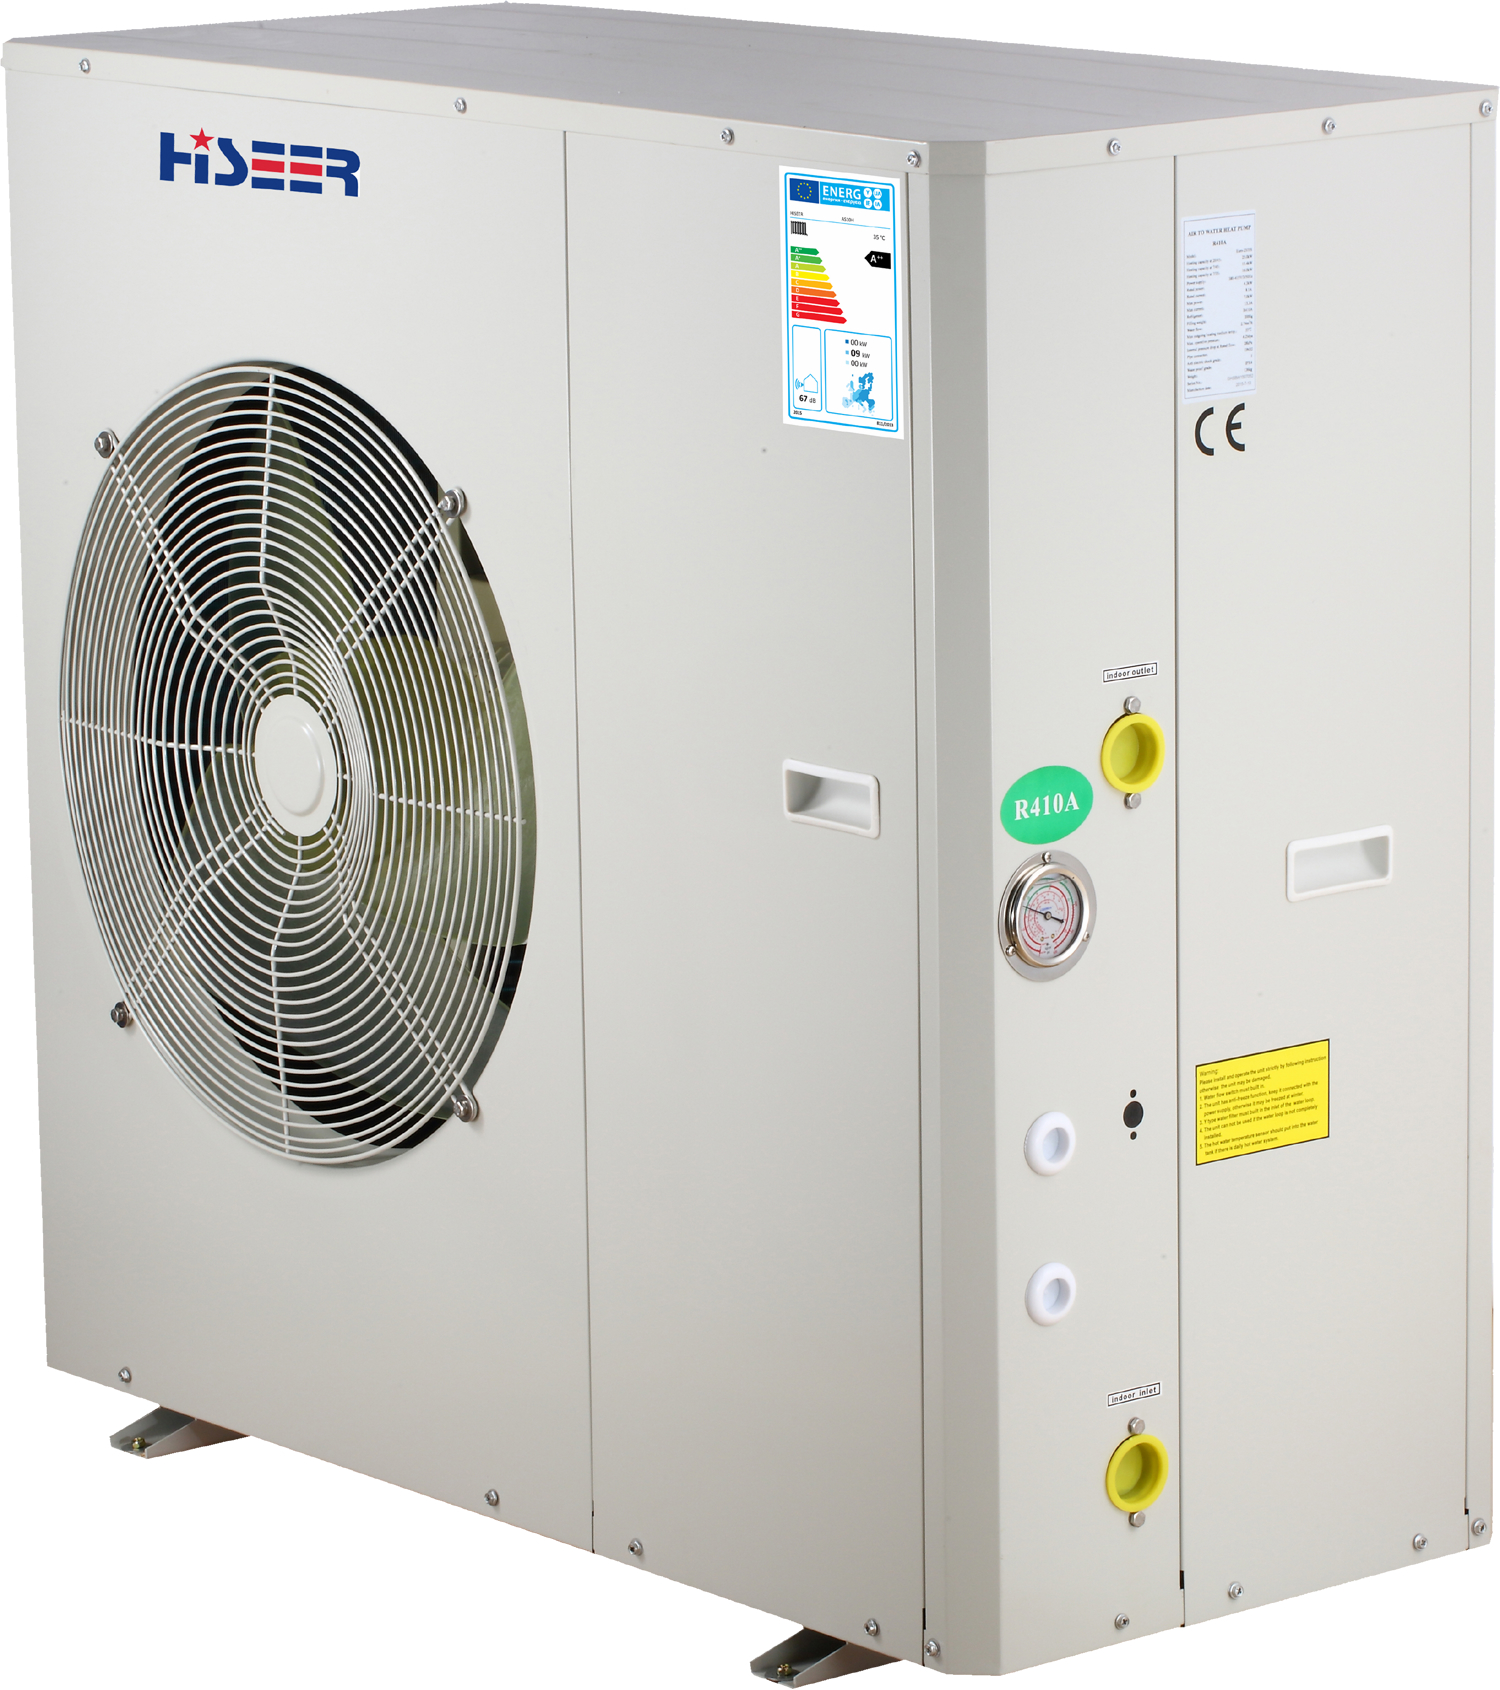 ErP labeled high efficiency A++ air to water heat pump  AS10H 1